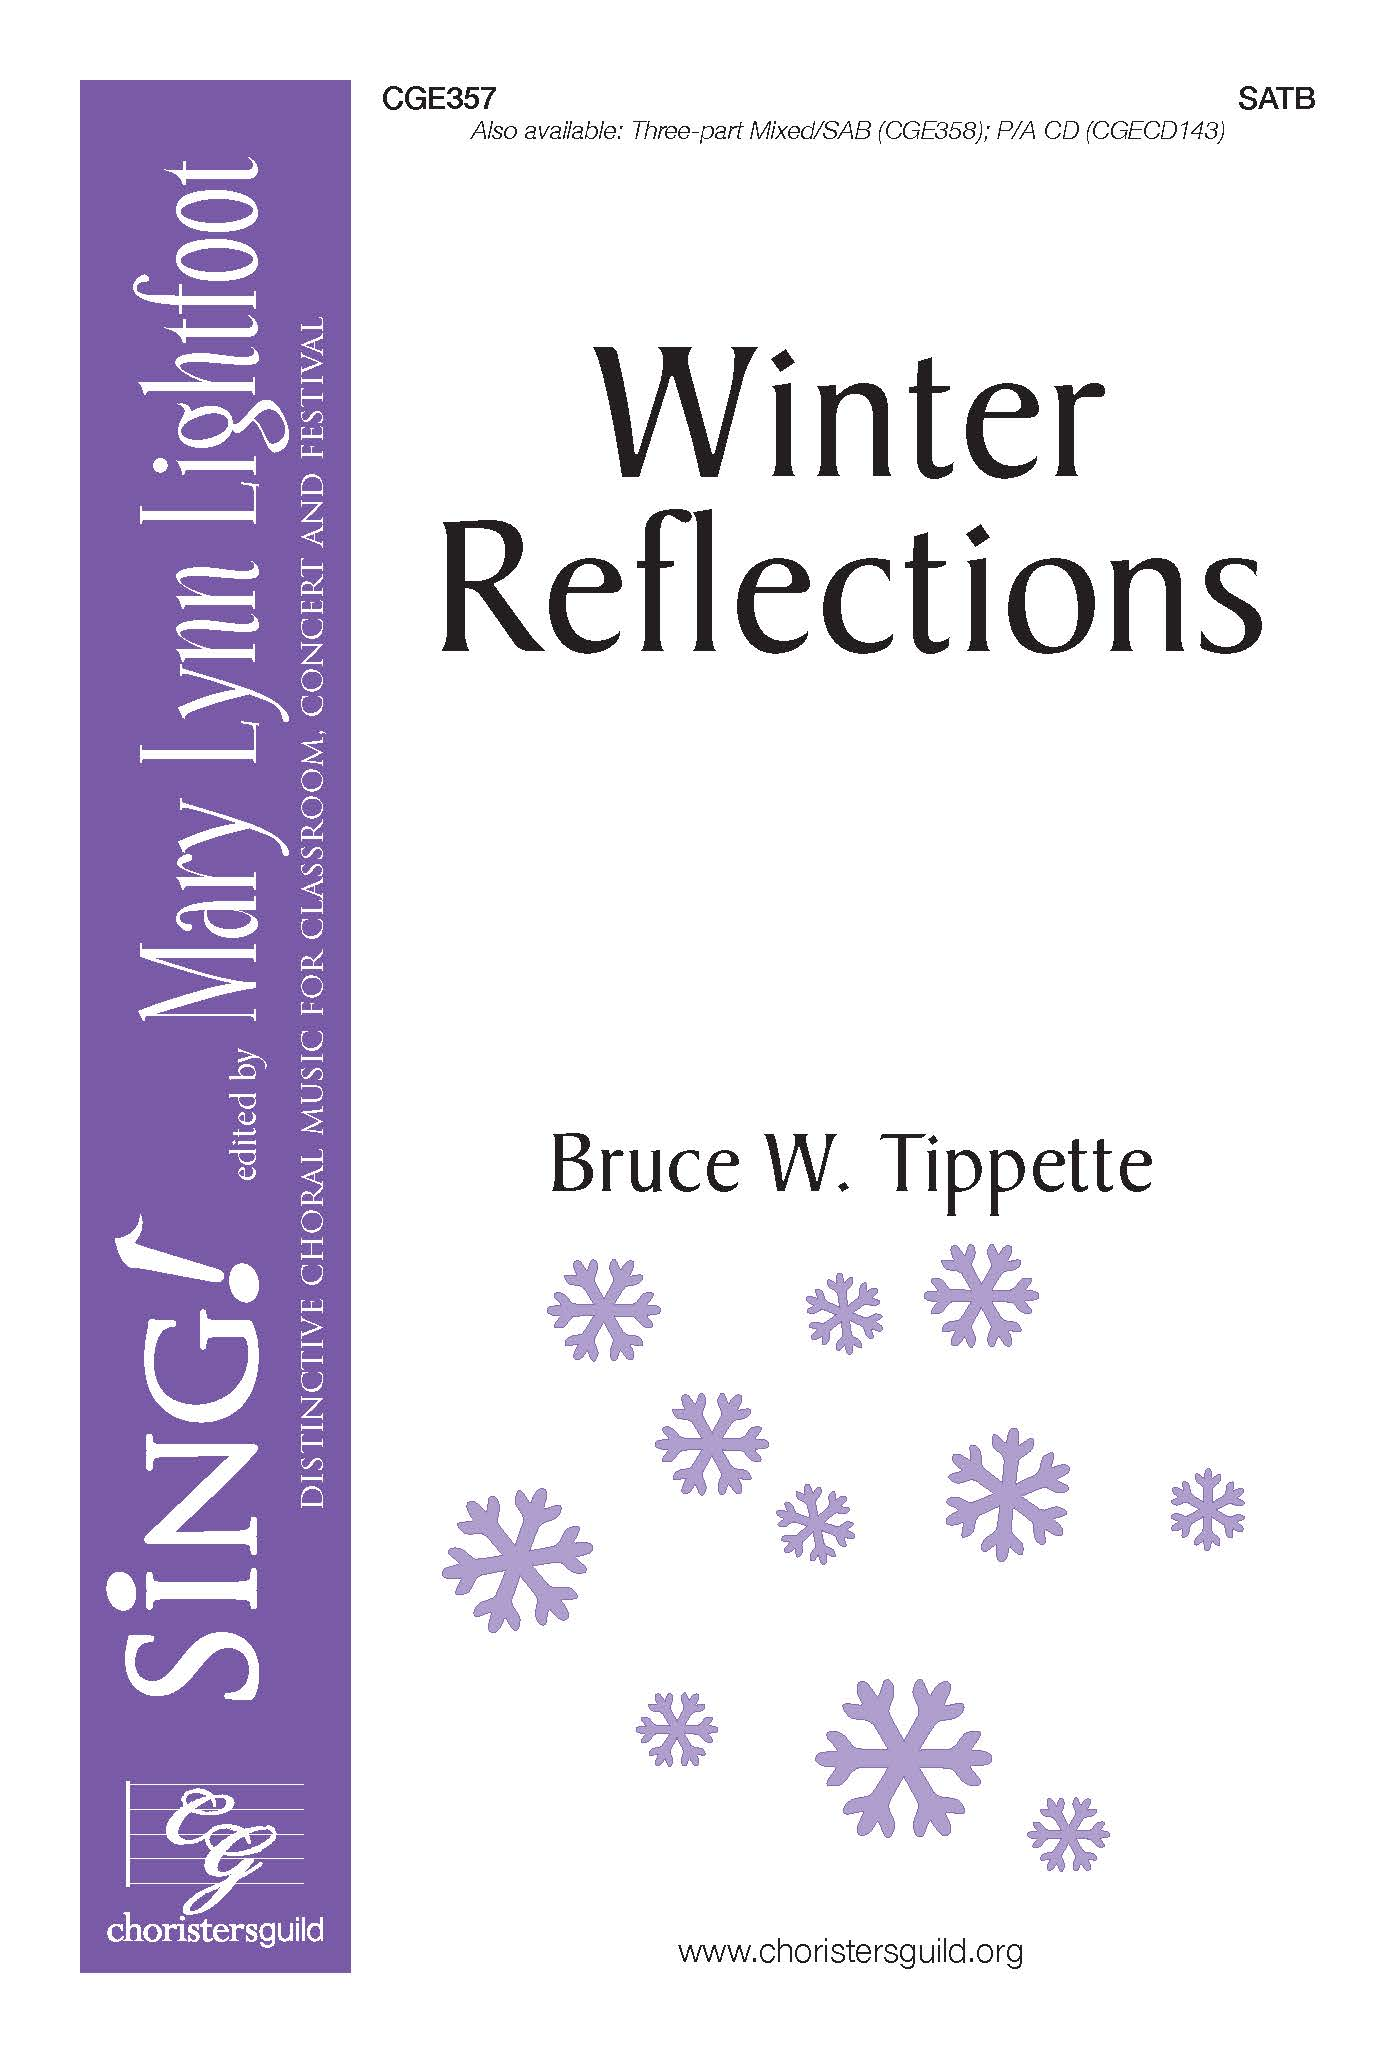 Winter Reflections - SATB